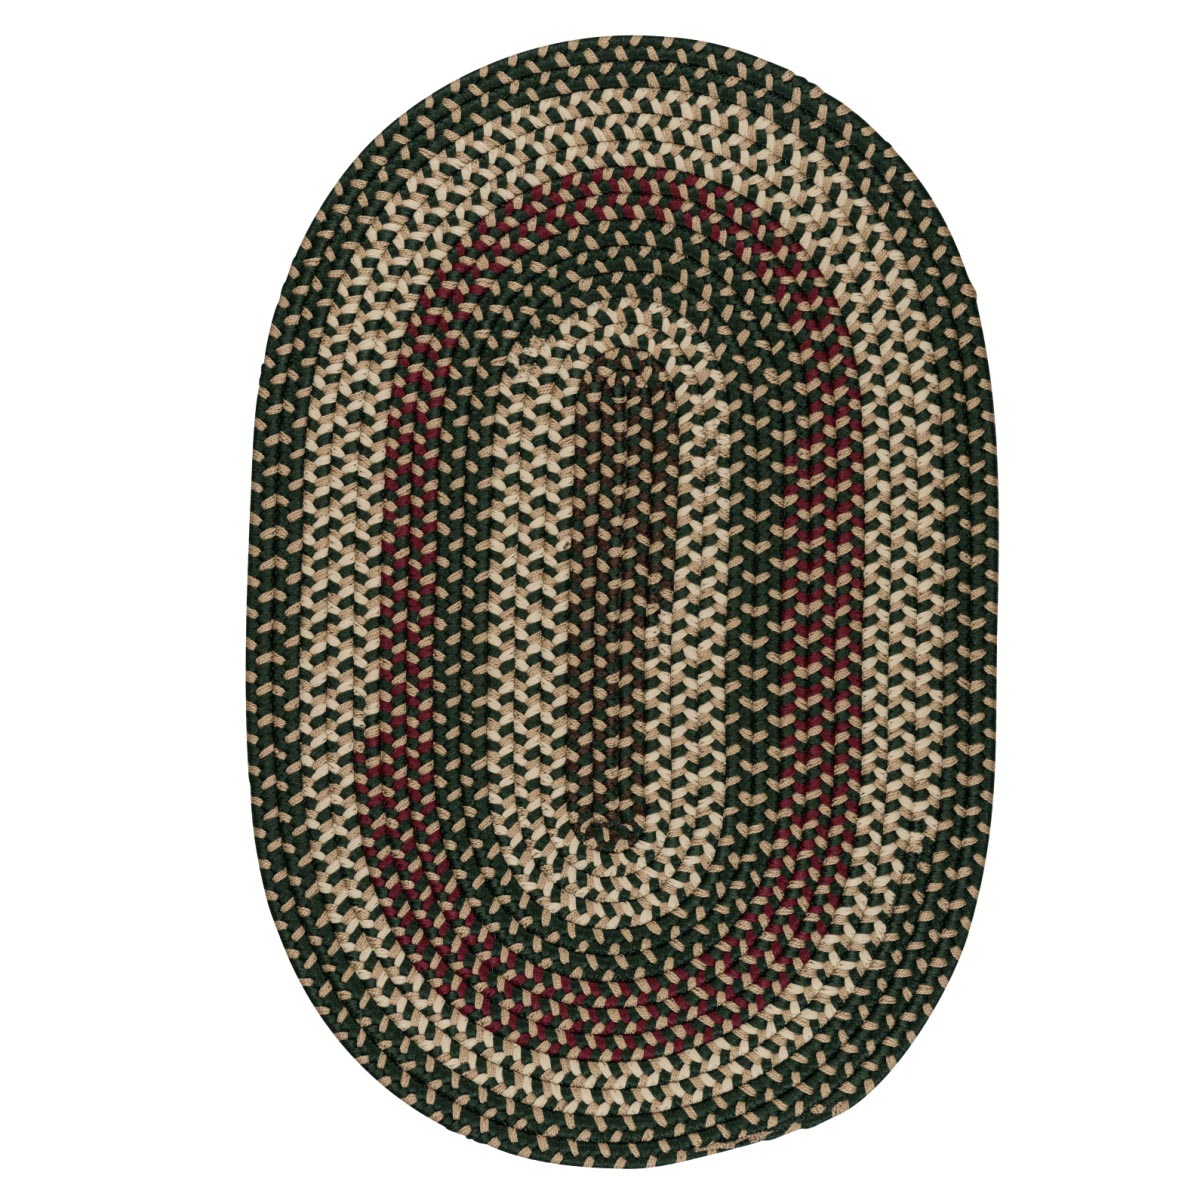 Brook Farm Winter Green Outdoor Braided Oval Rugs